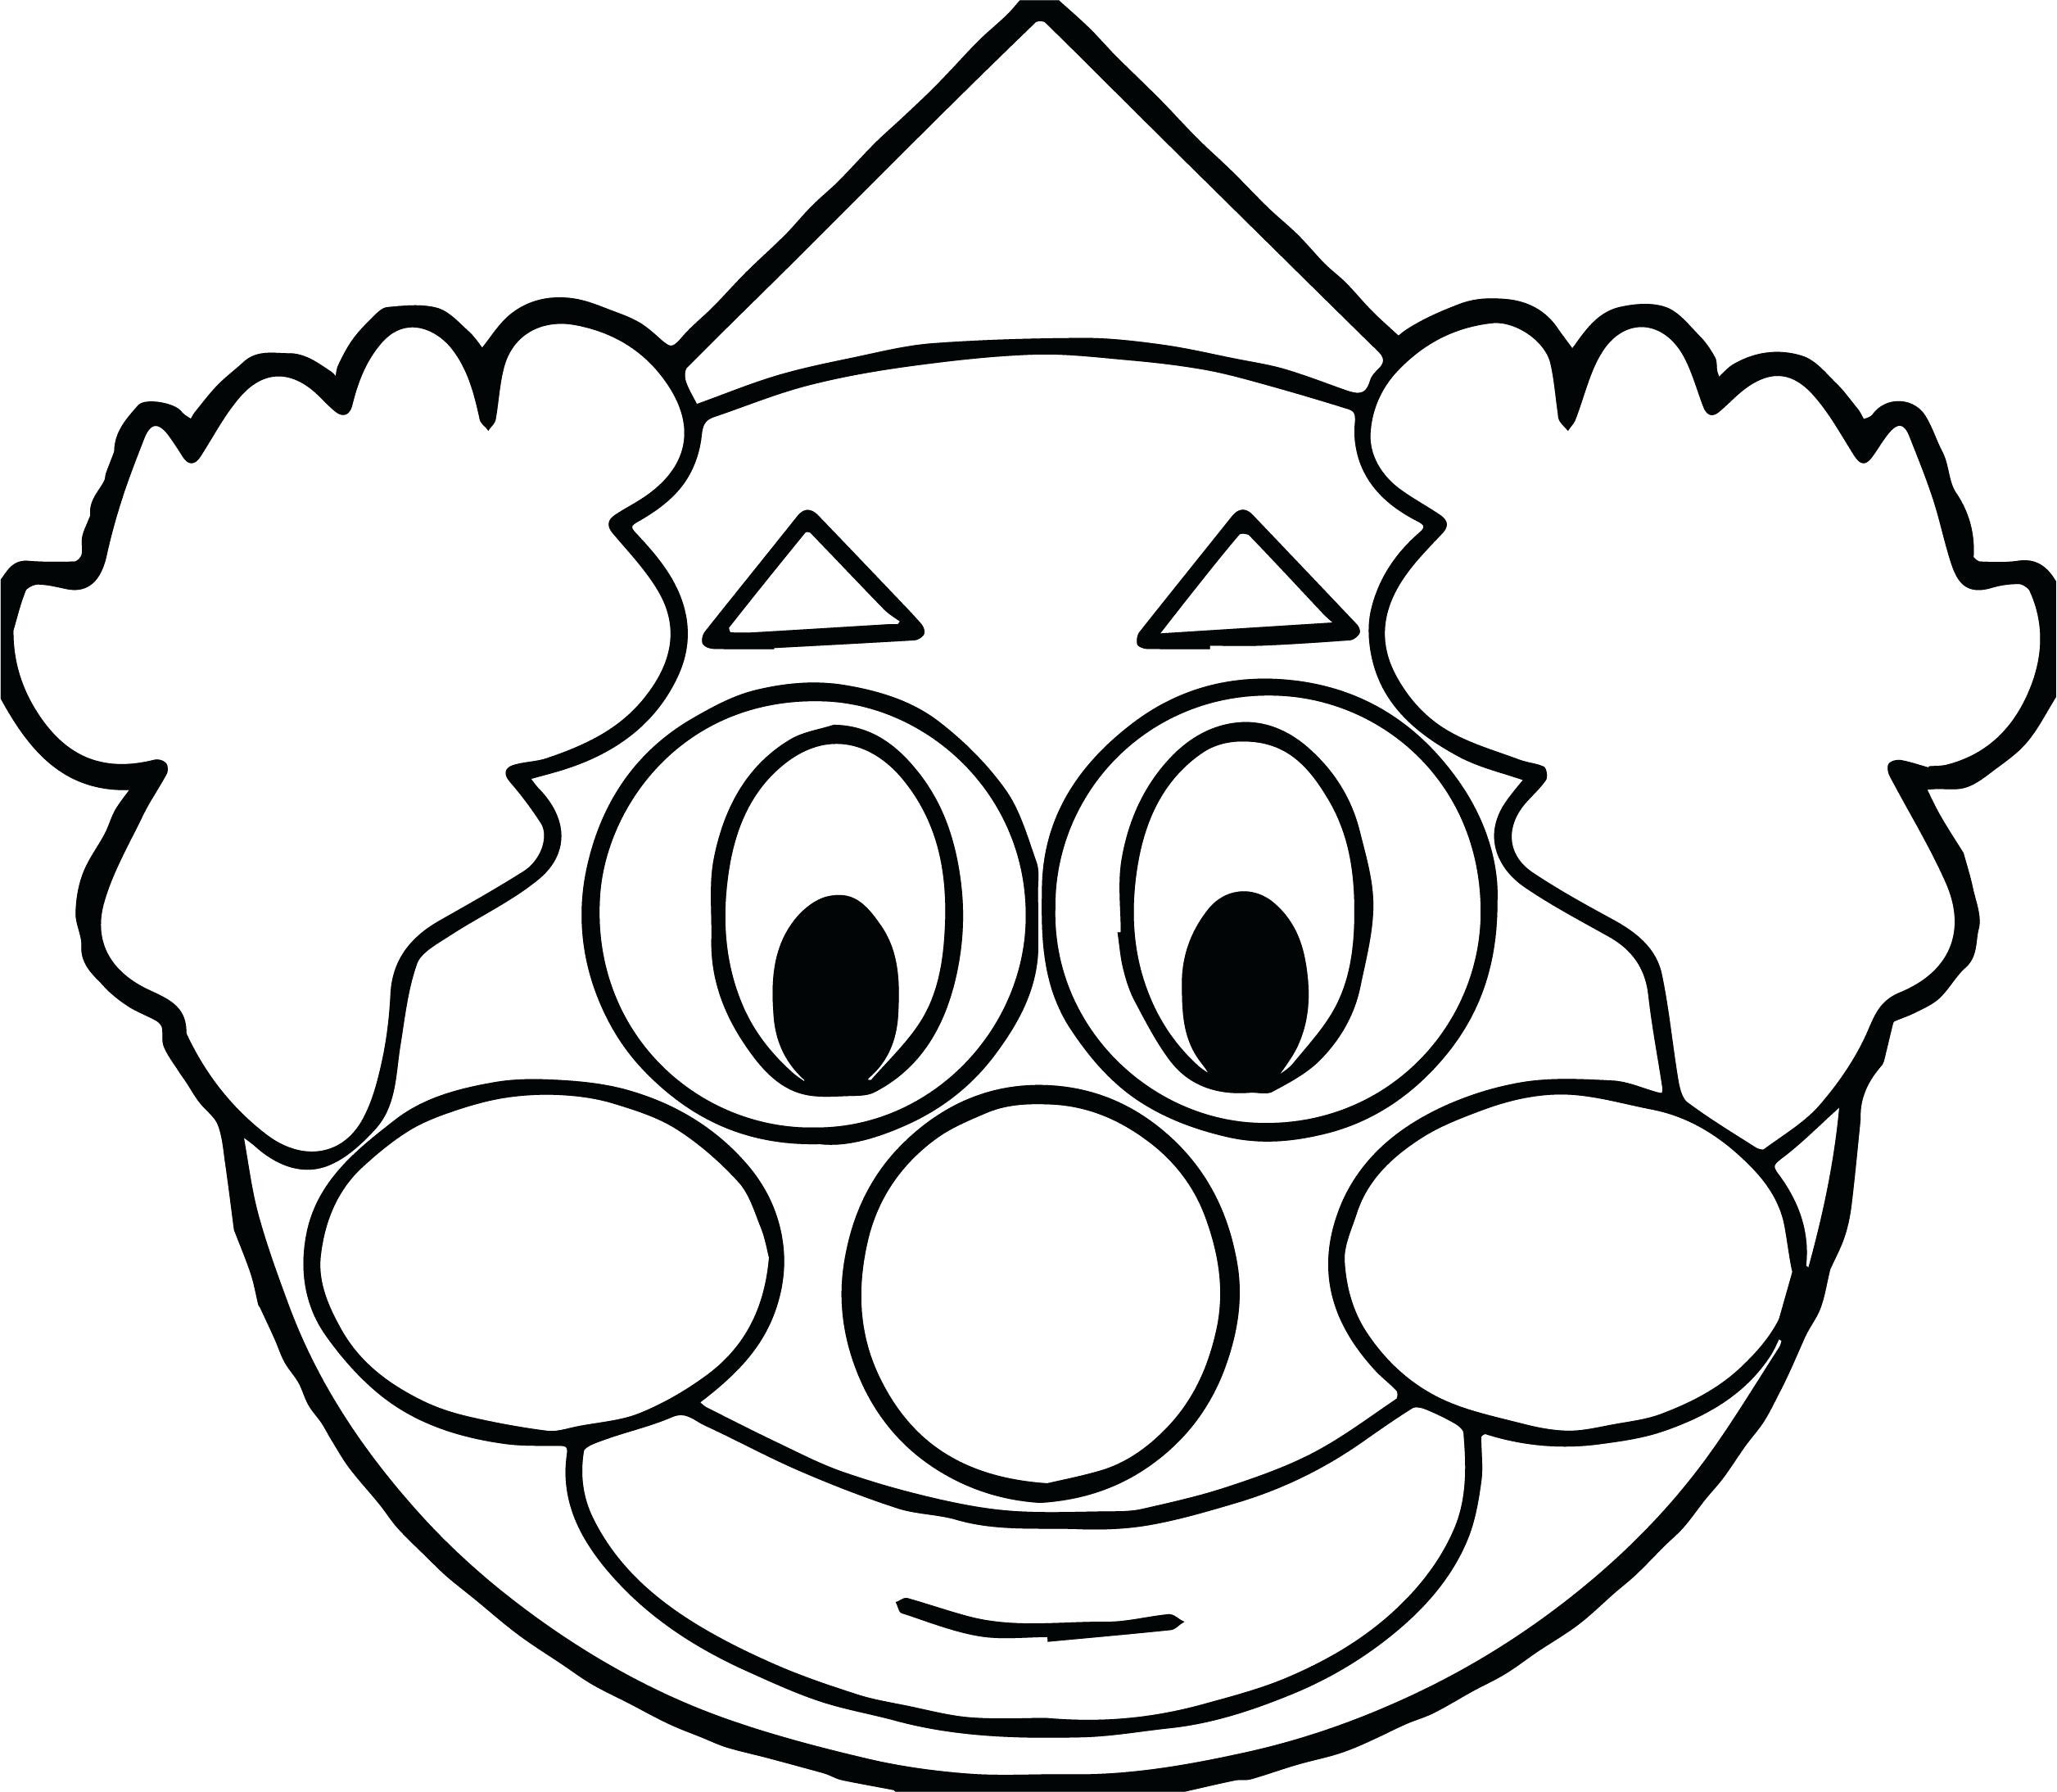 Clown face clipart black and white clip free library Clown Face Drawing | Free download best Clown Face Drawing on ... clip free library